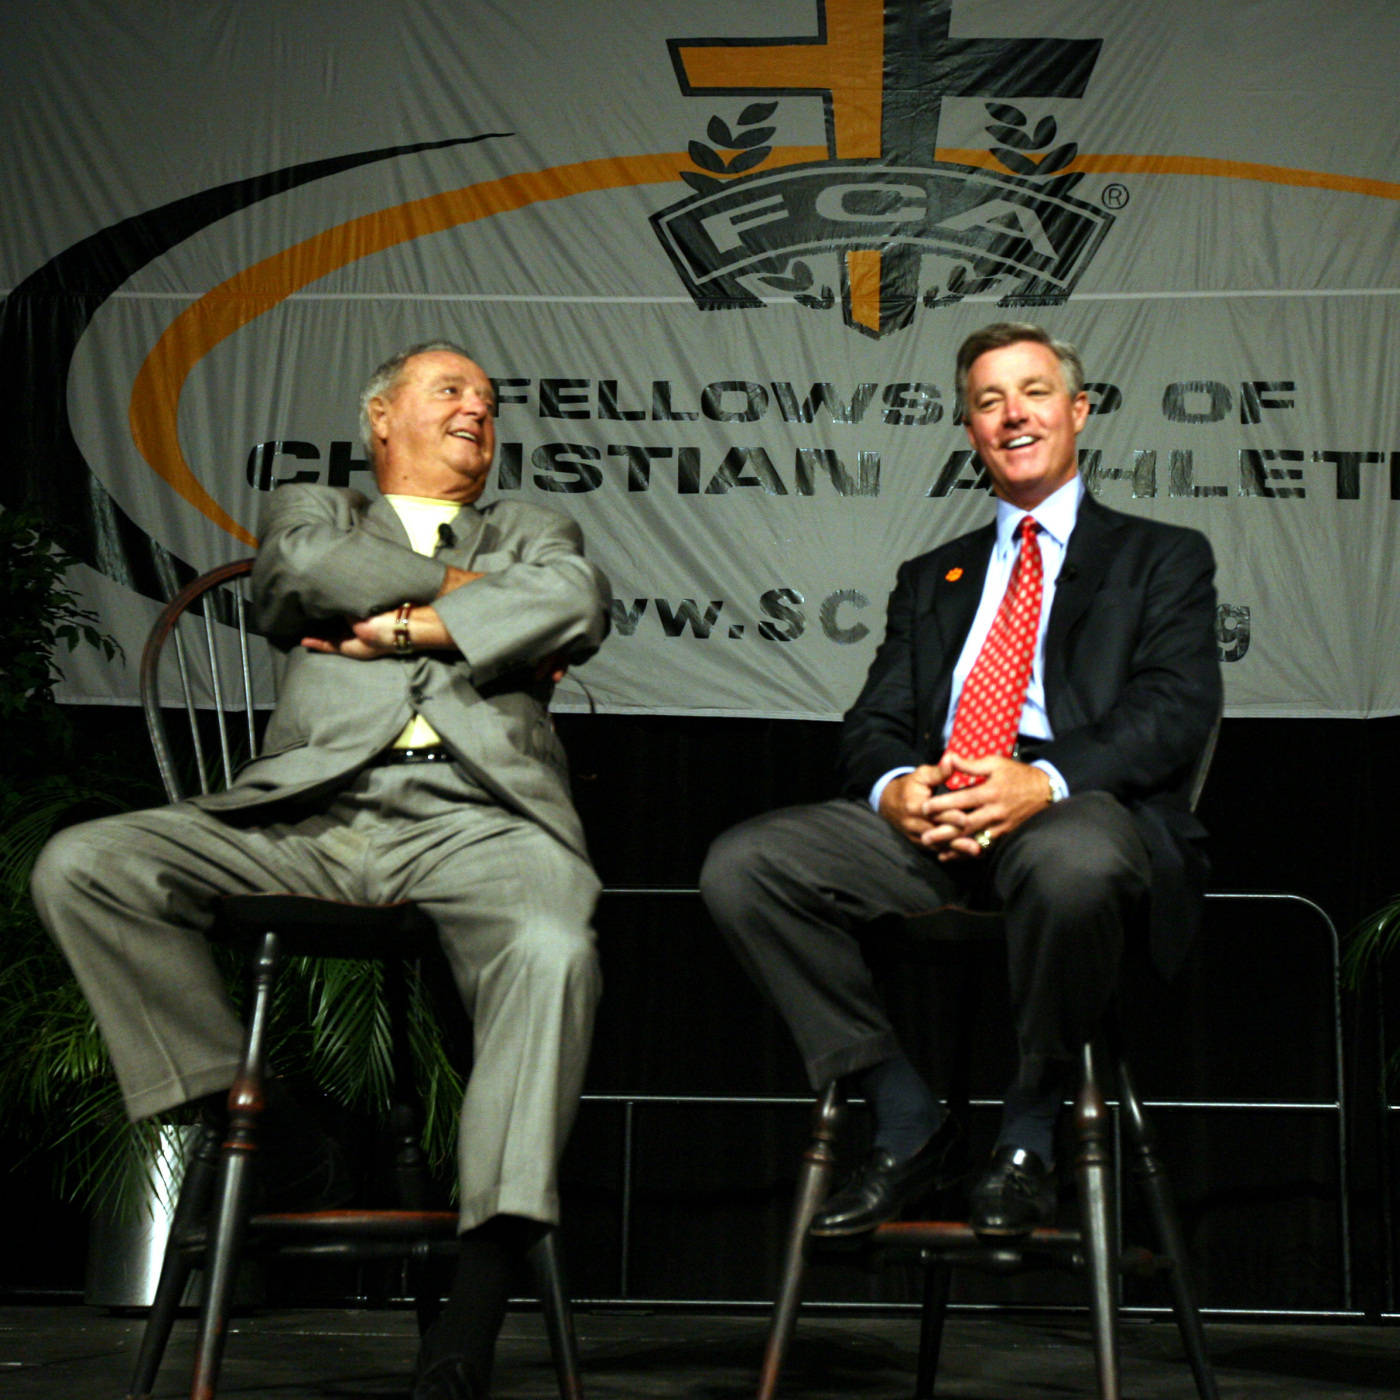 Florida State head football coach Bobby Bowden, left, and his son, Tommy, head coach at Clemson, share a laugh during their annual Fellowship of Christian Athletes Bowden Breakfast Monday, Sept. 3, 2007, at the Carolina First Center in Greenville, S.C. The FCA of Upstate South Carolina has sponsored the event each year Florida State plays at Clemson since 1999. (AP Photo/Anderson Independent-Mail, Mark Crammer)